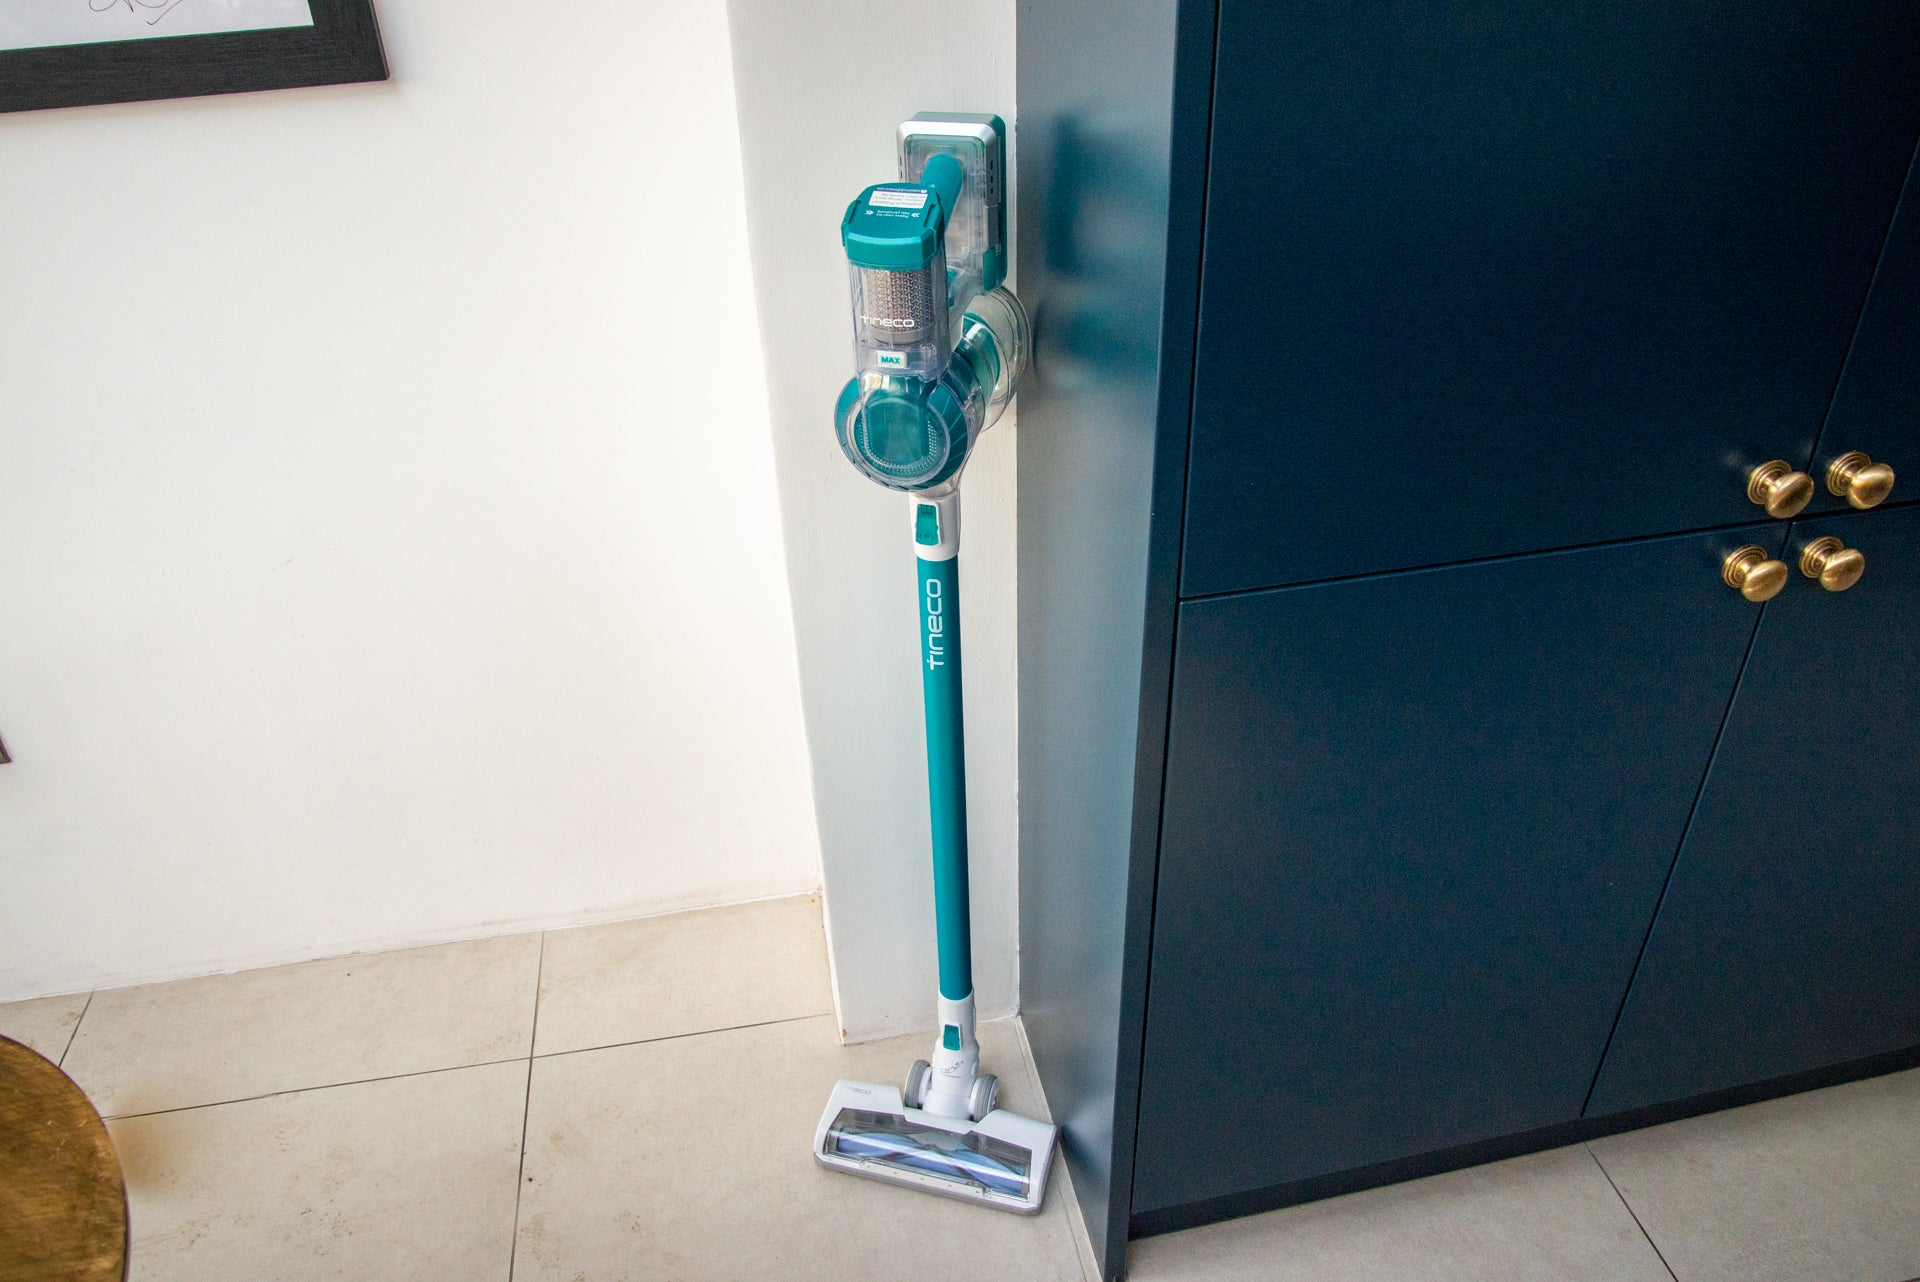 Details about Tineco A11 Master+ Cordless Vacuum Cleaner, 450W Rating Power High Suction,Dual